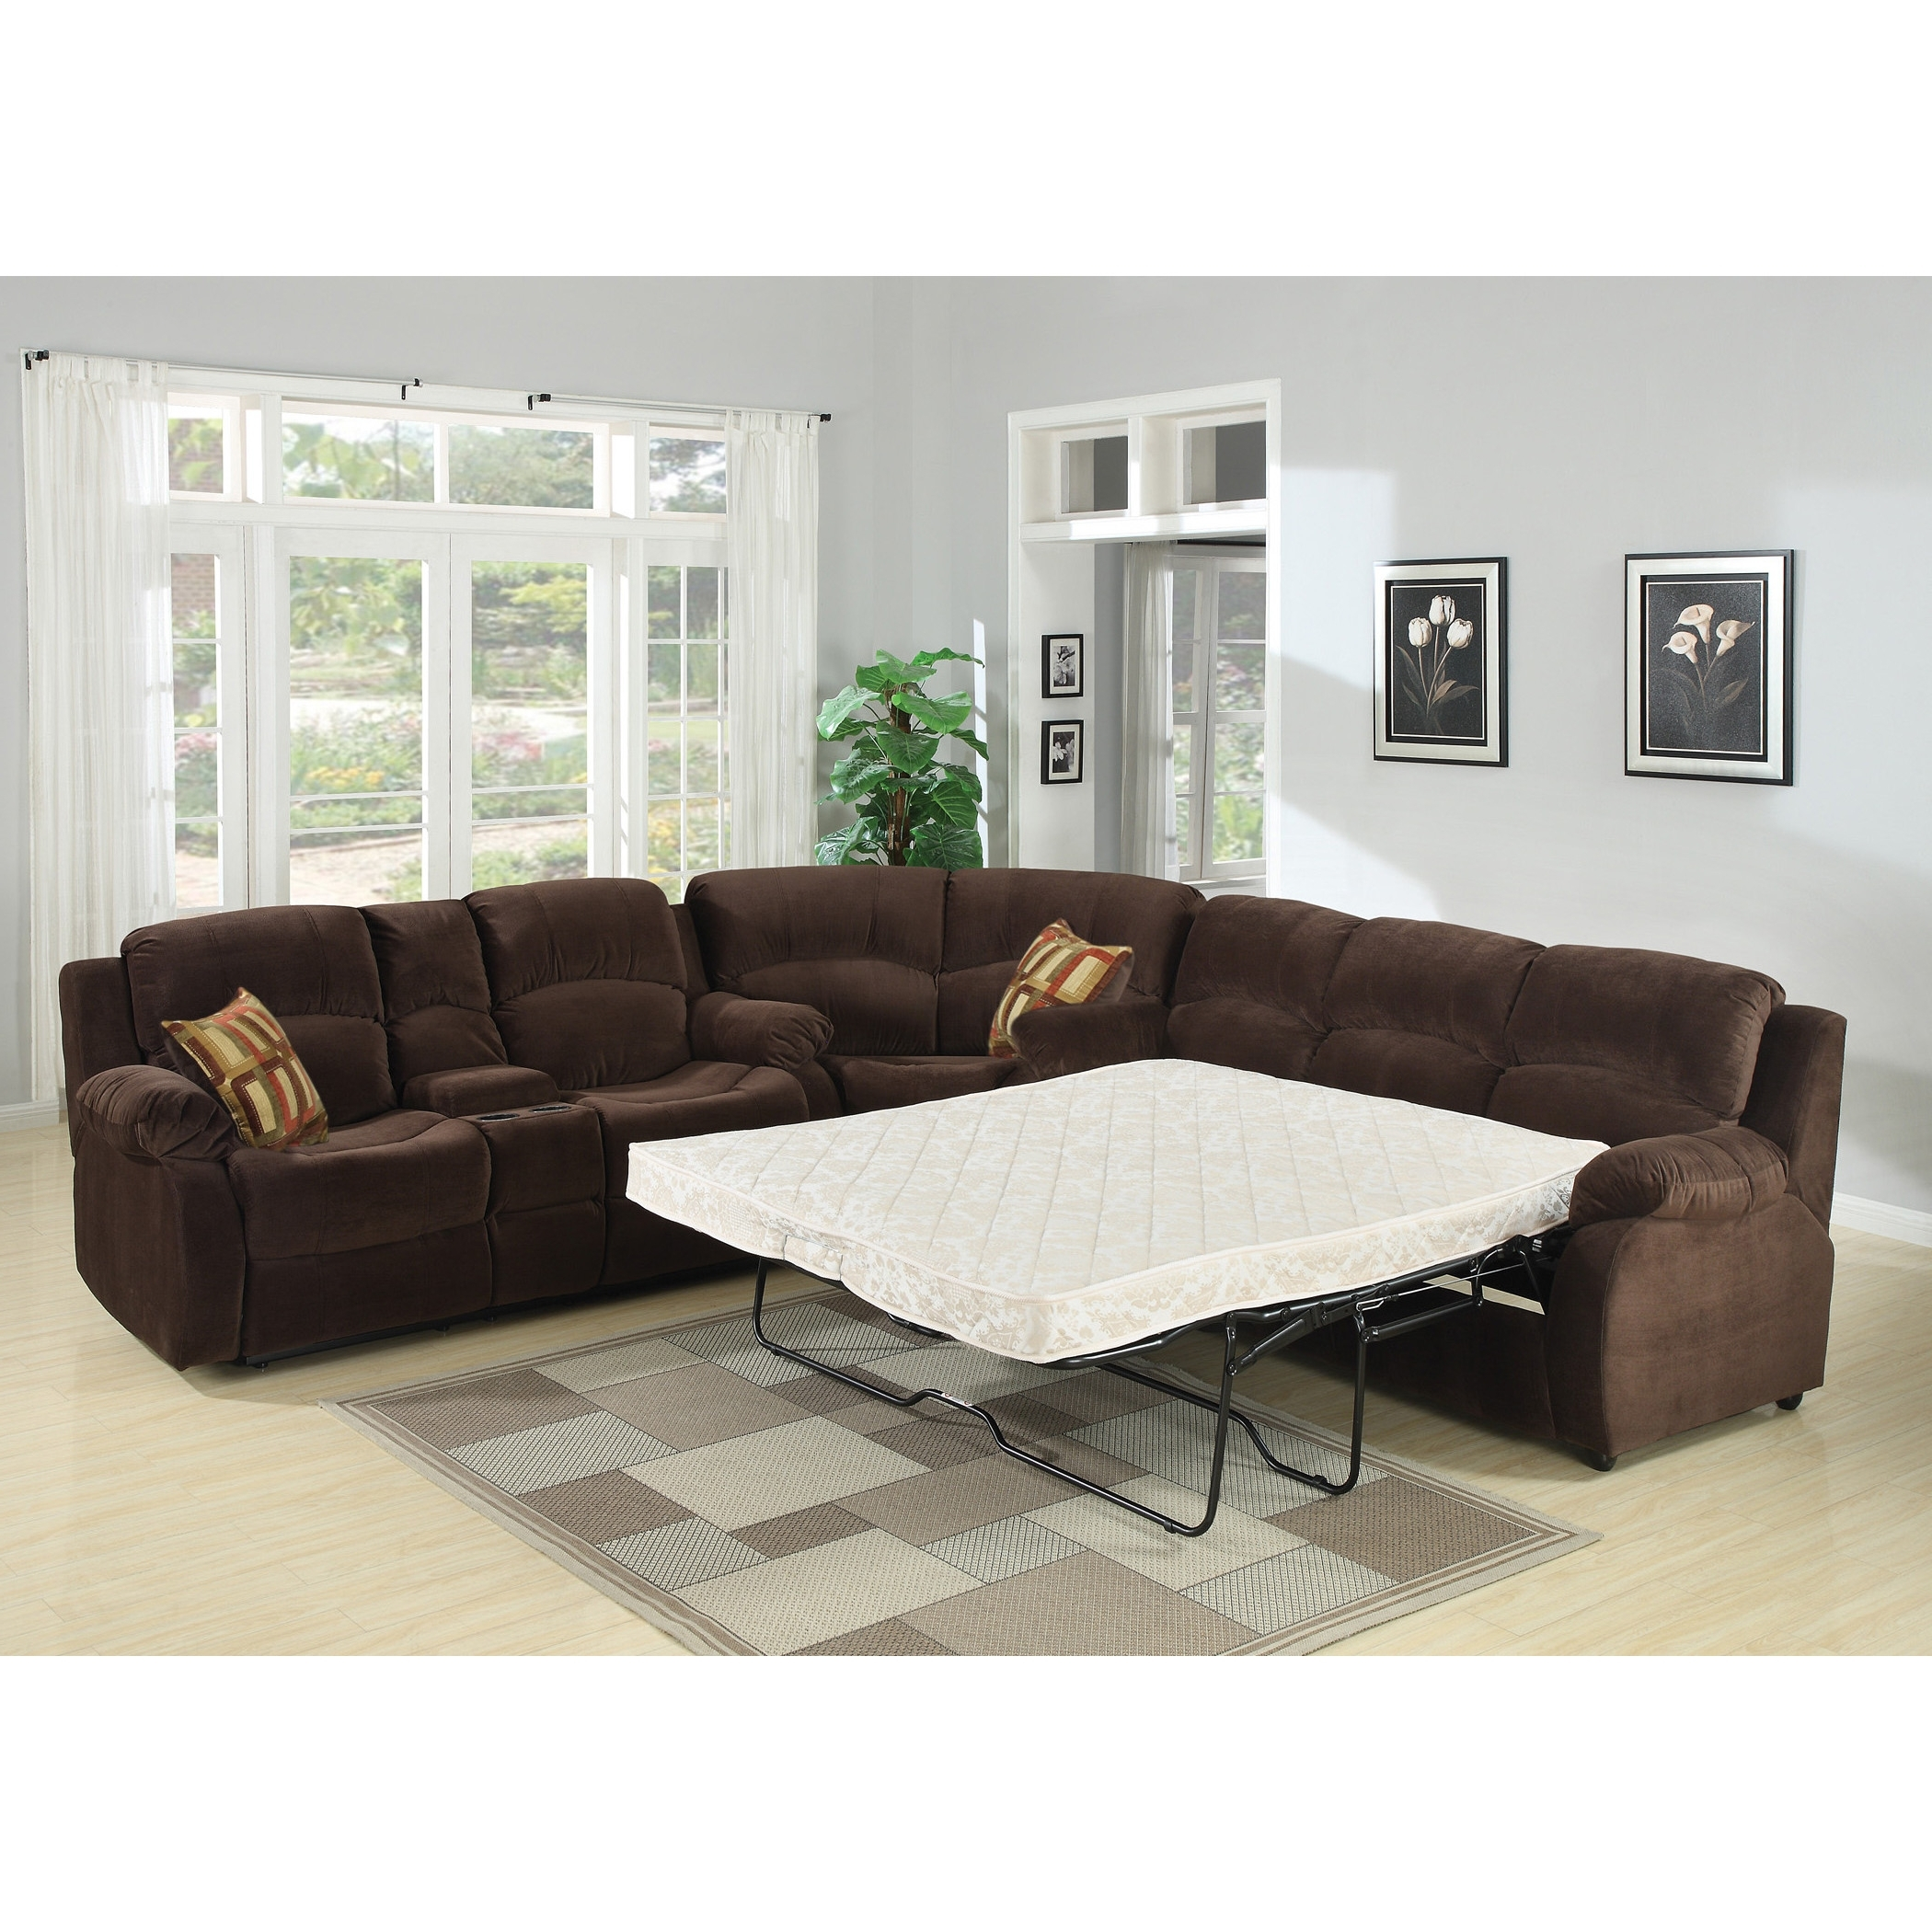 Sofa : Wonderful Sectional Sofa Queen Bed Russ Sectional Sofa Regarding Most Current Sectional Sofas With Queen Size Sleeper (View 12 of 15)